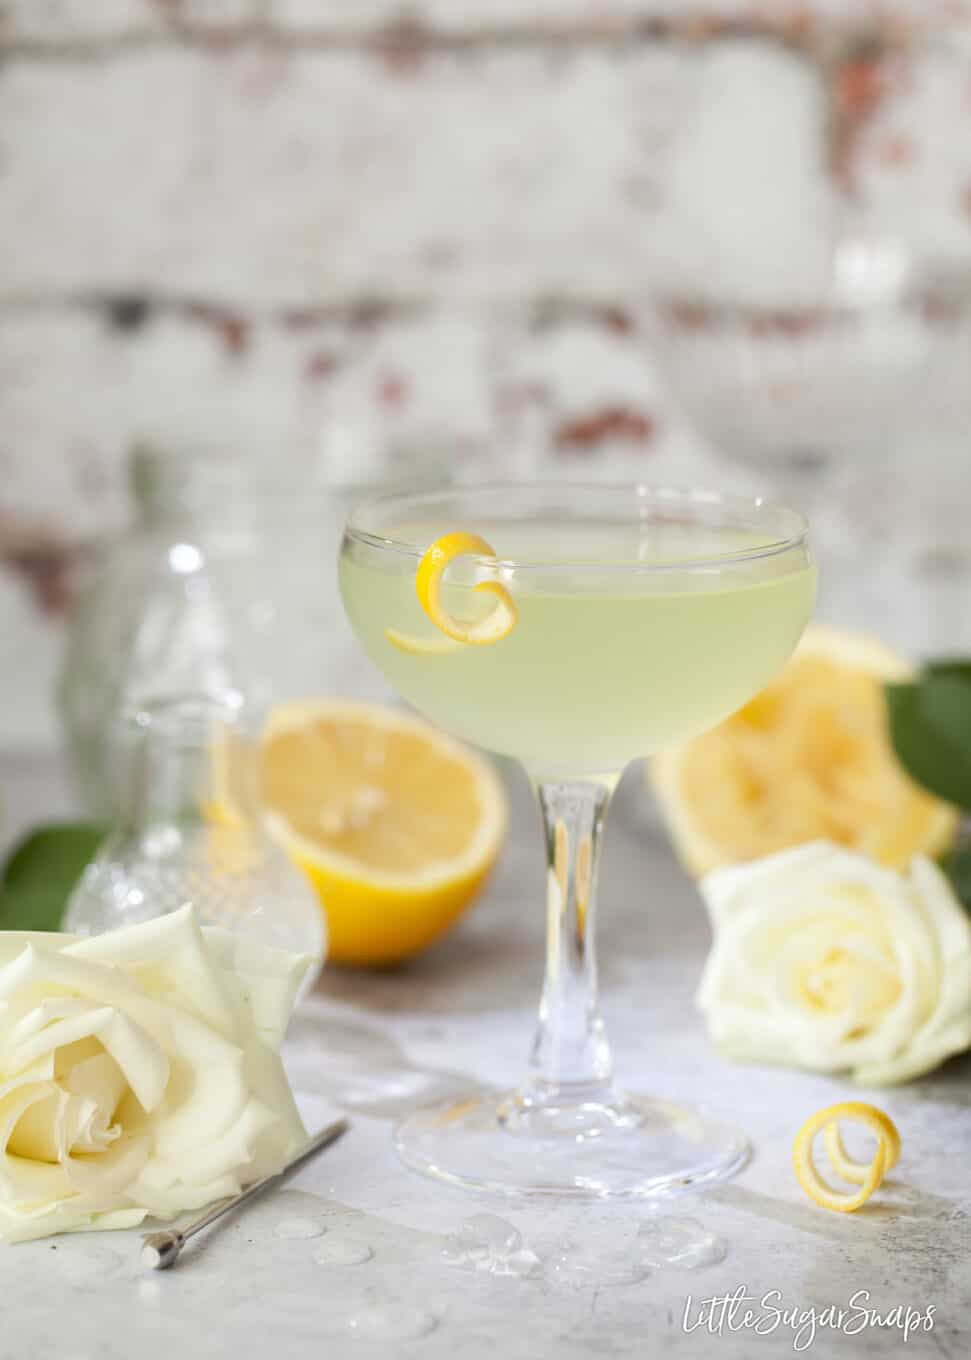 The classic Spring Feeling made with gin, lemon juice and green chartreuse. Garnished with a strip of lemon zest